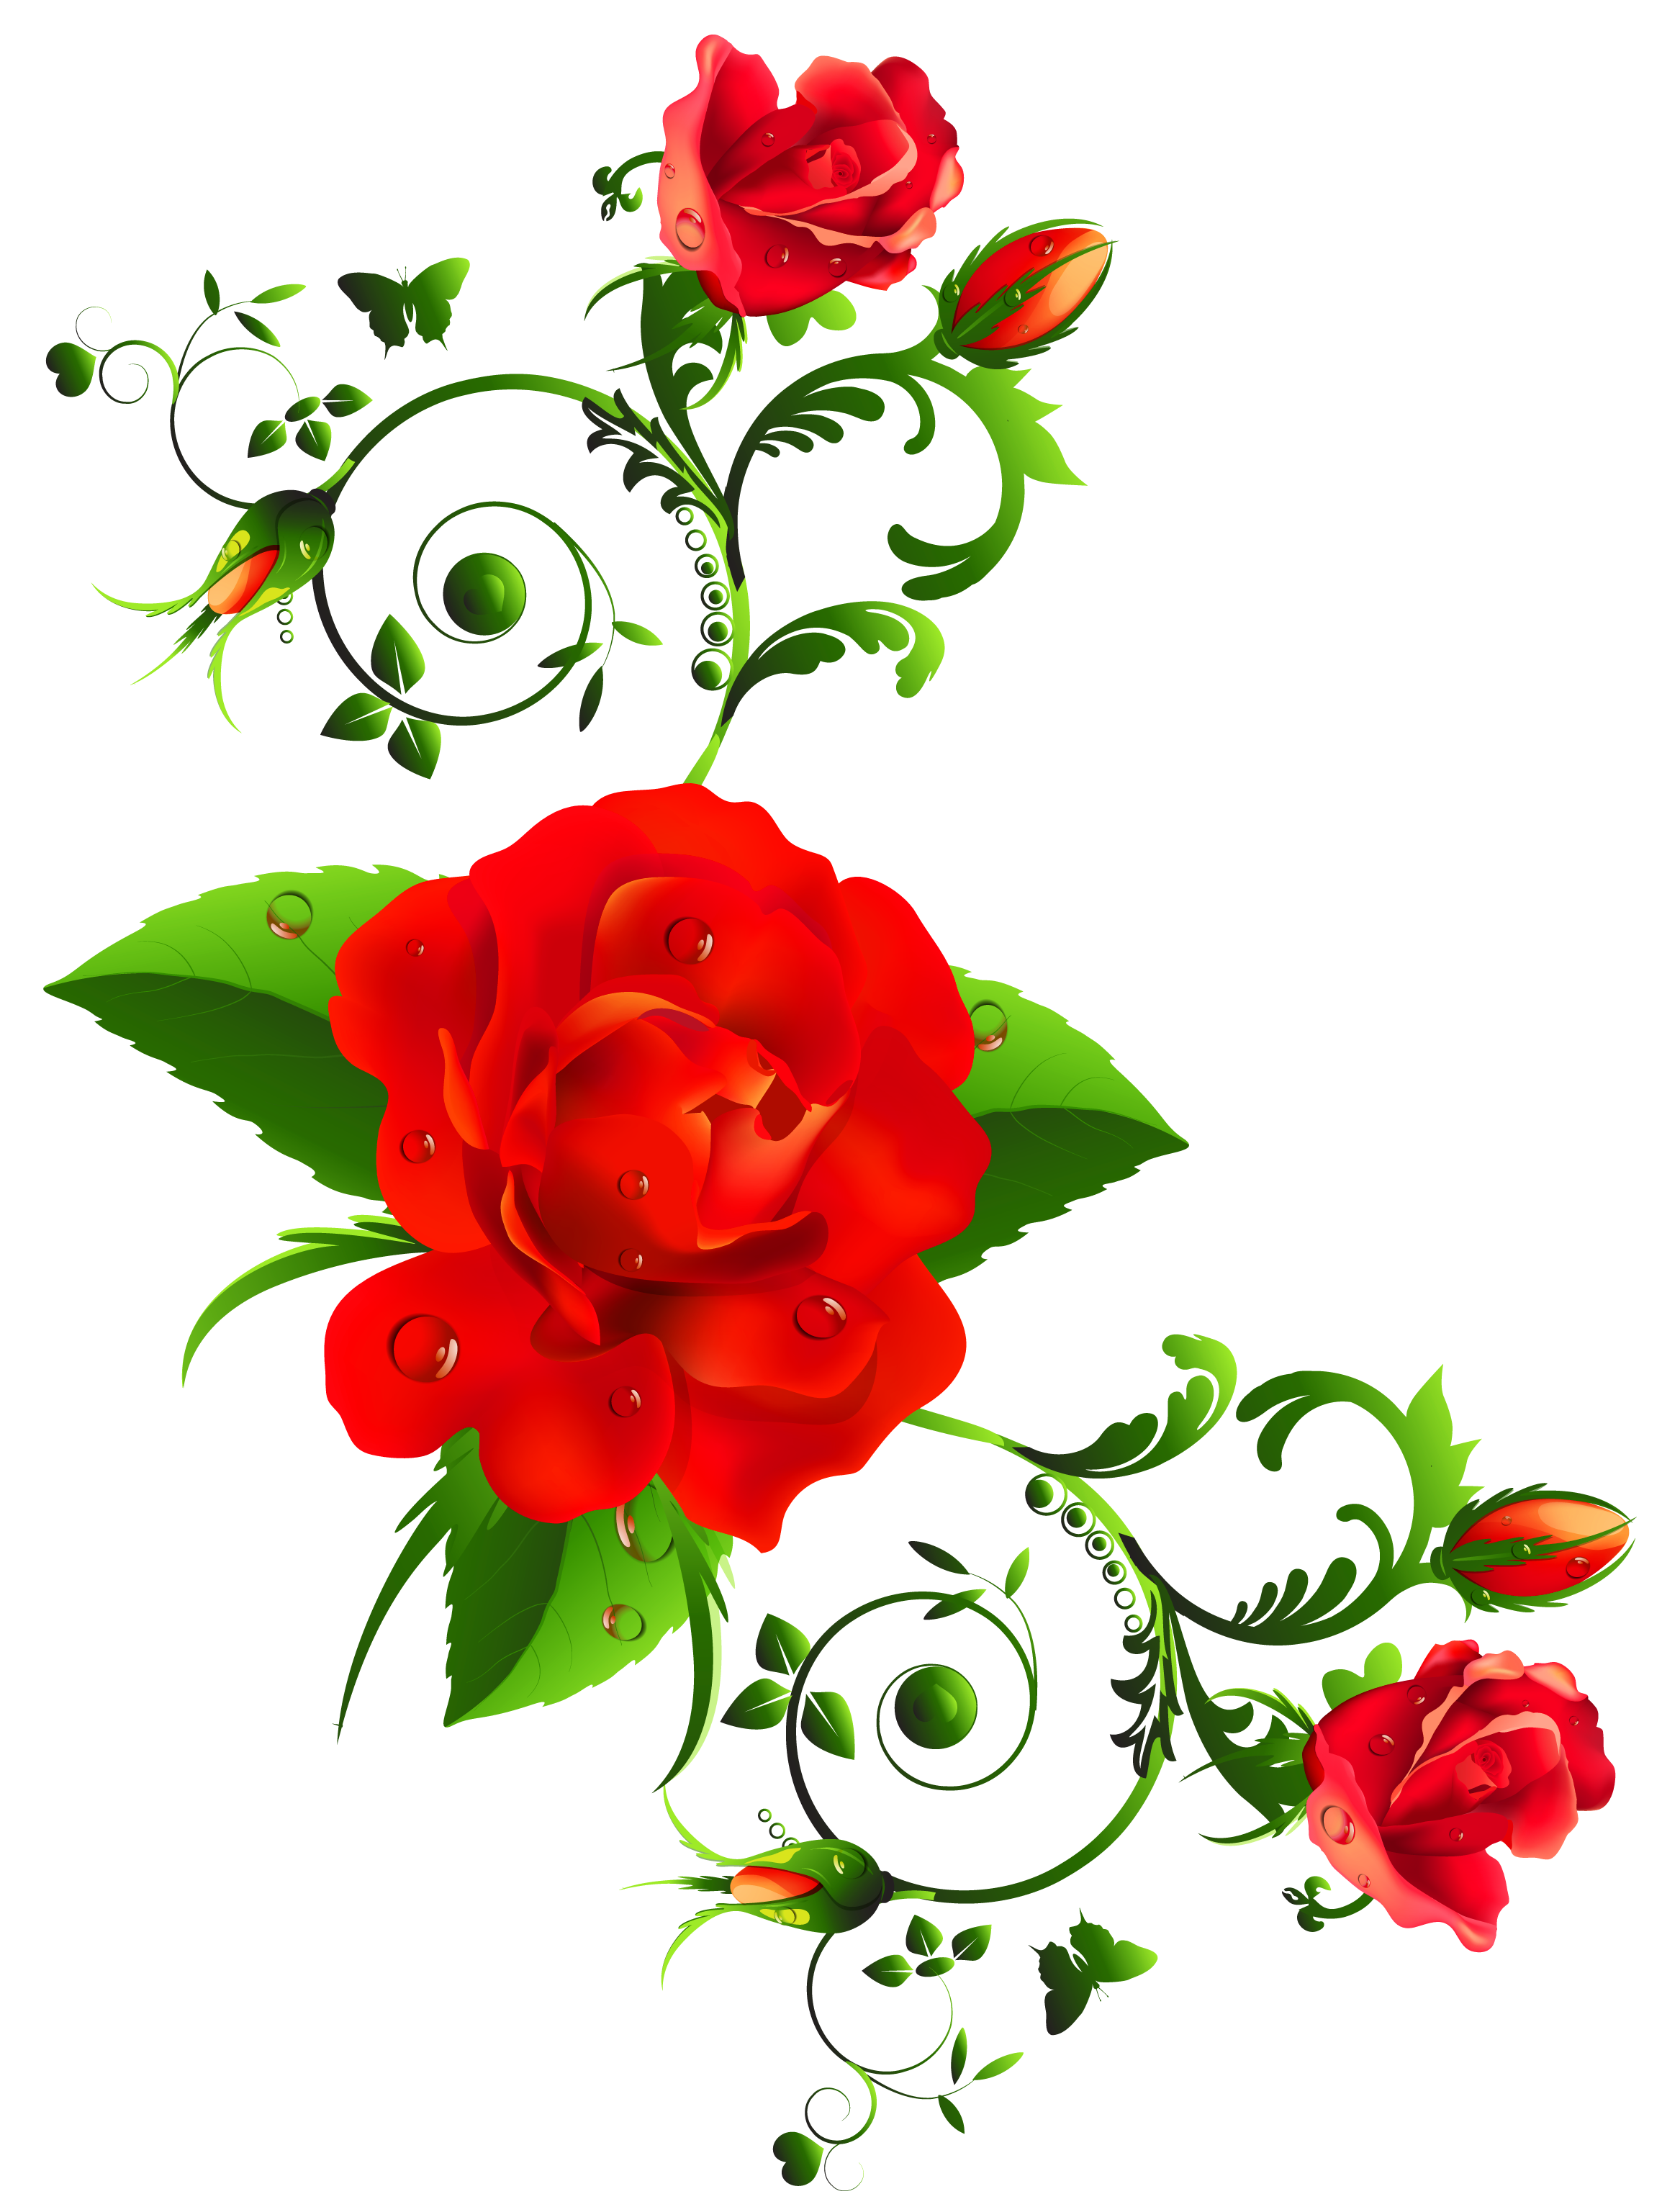 Red Flower clipart nice view #3